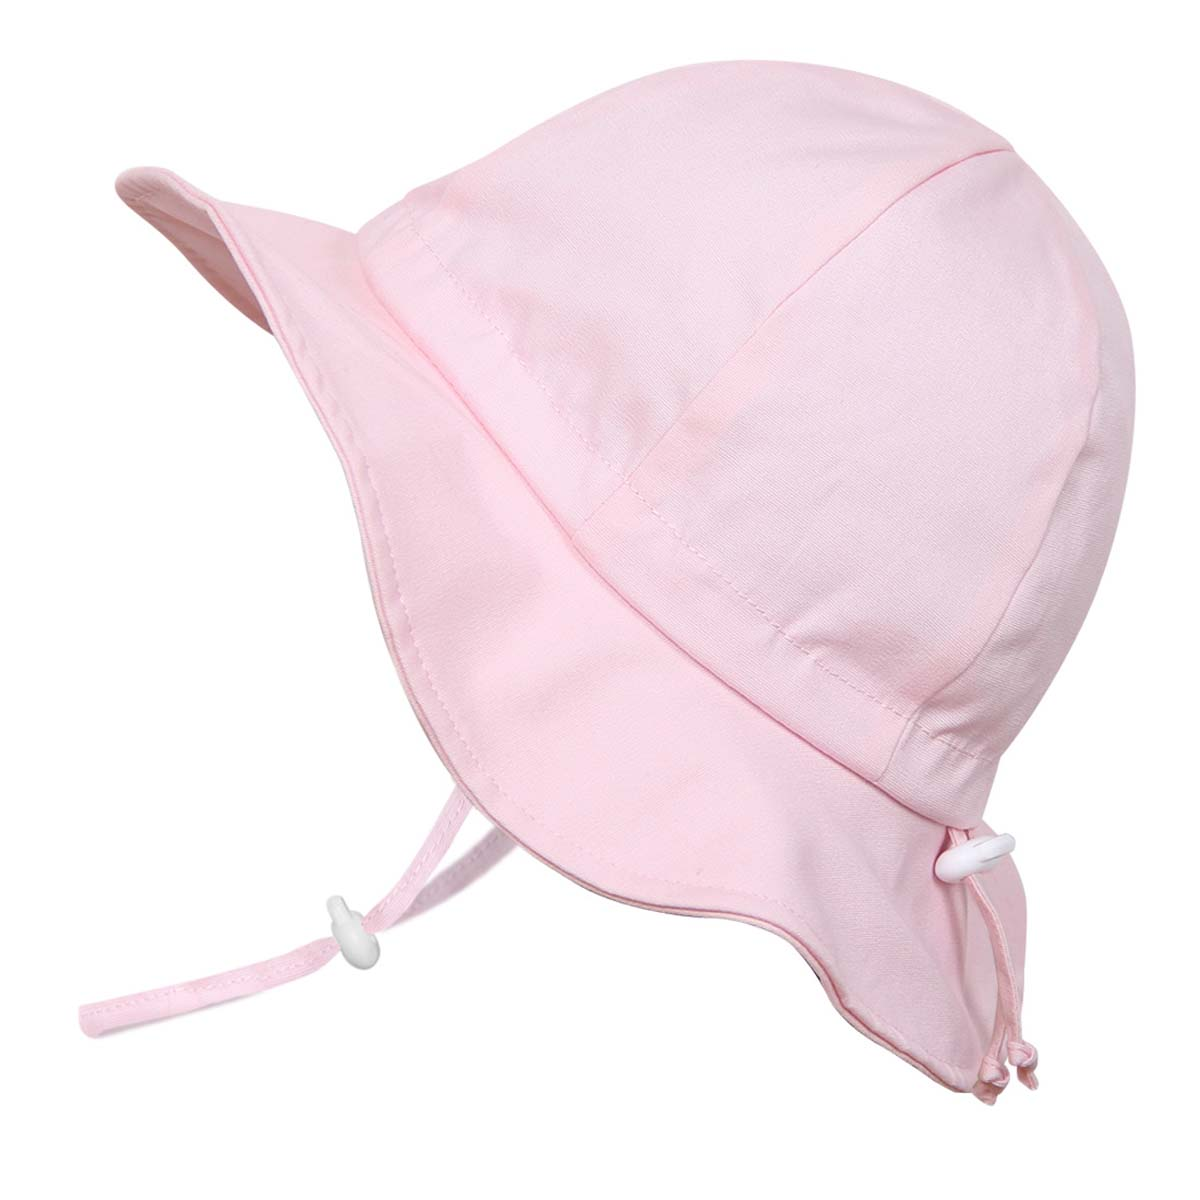 Add to My Lists. Twinklebelle Cotton Floppy Grow With Me Sun Hat ... c18f9c46fcb6